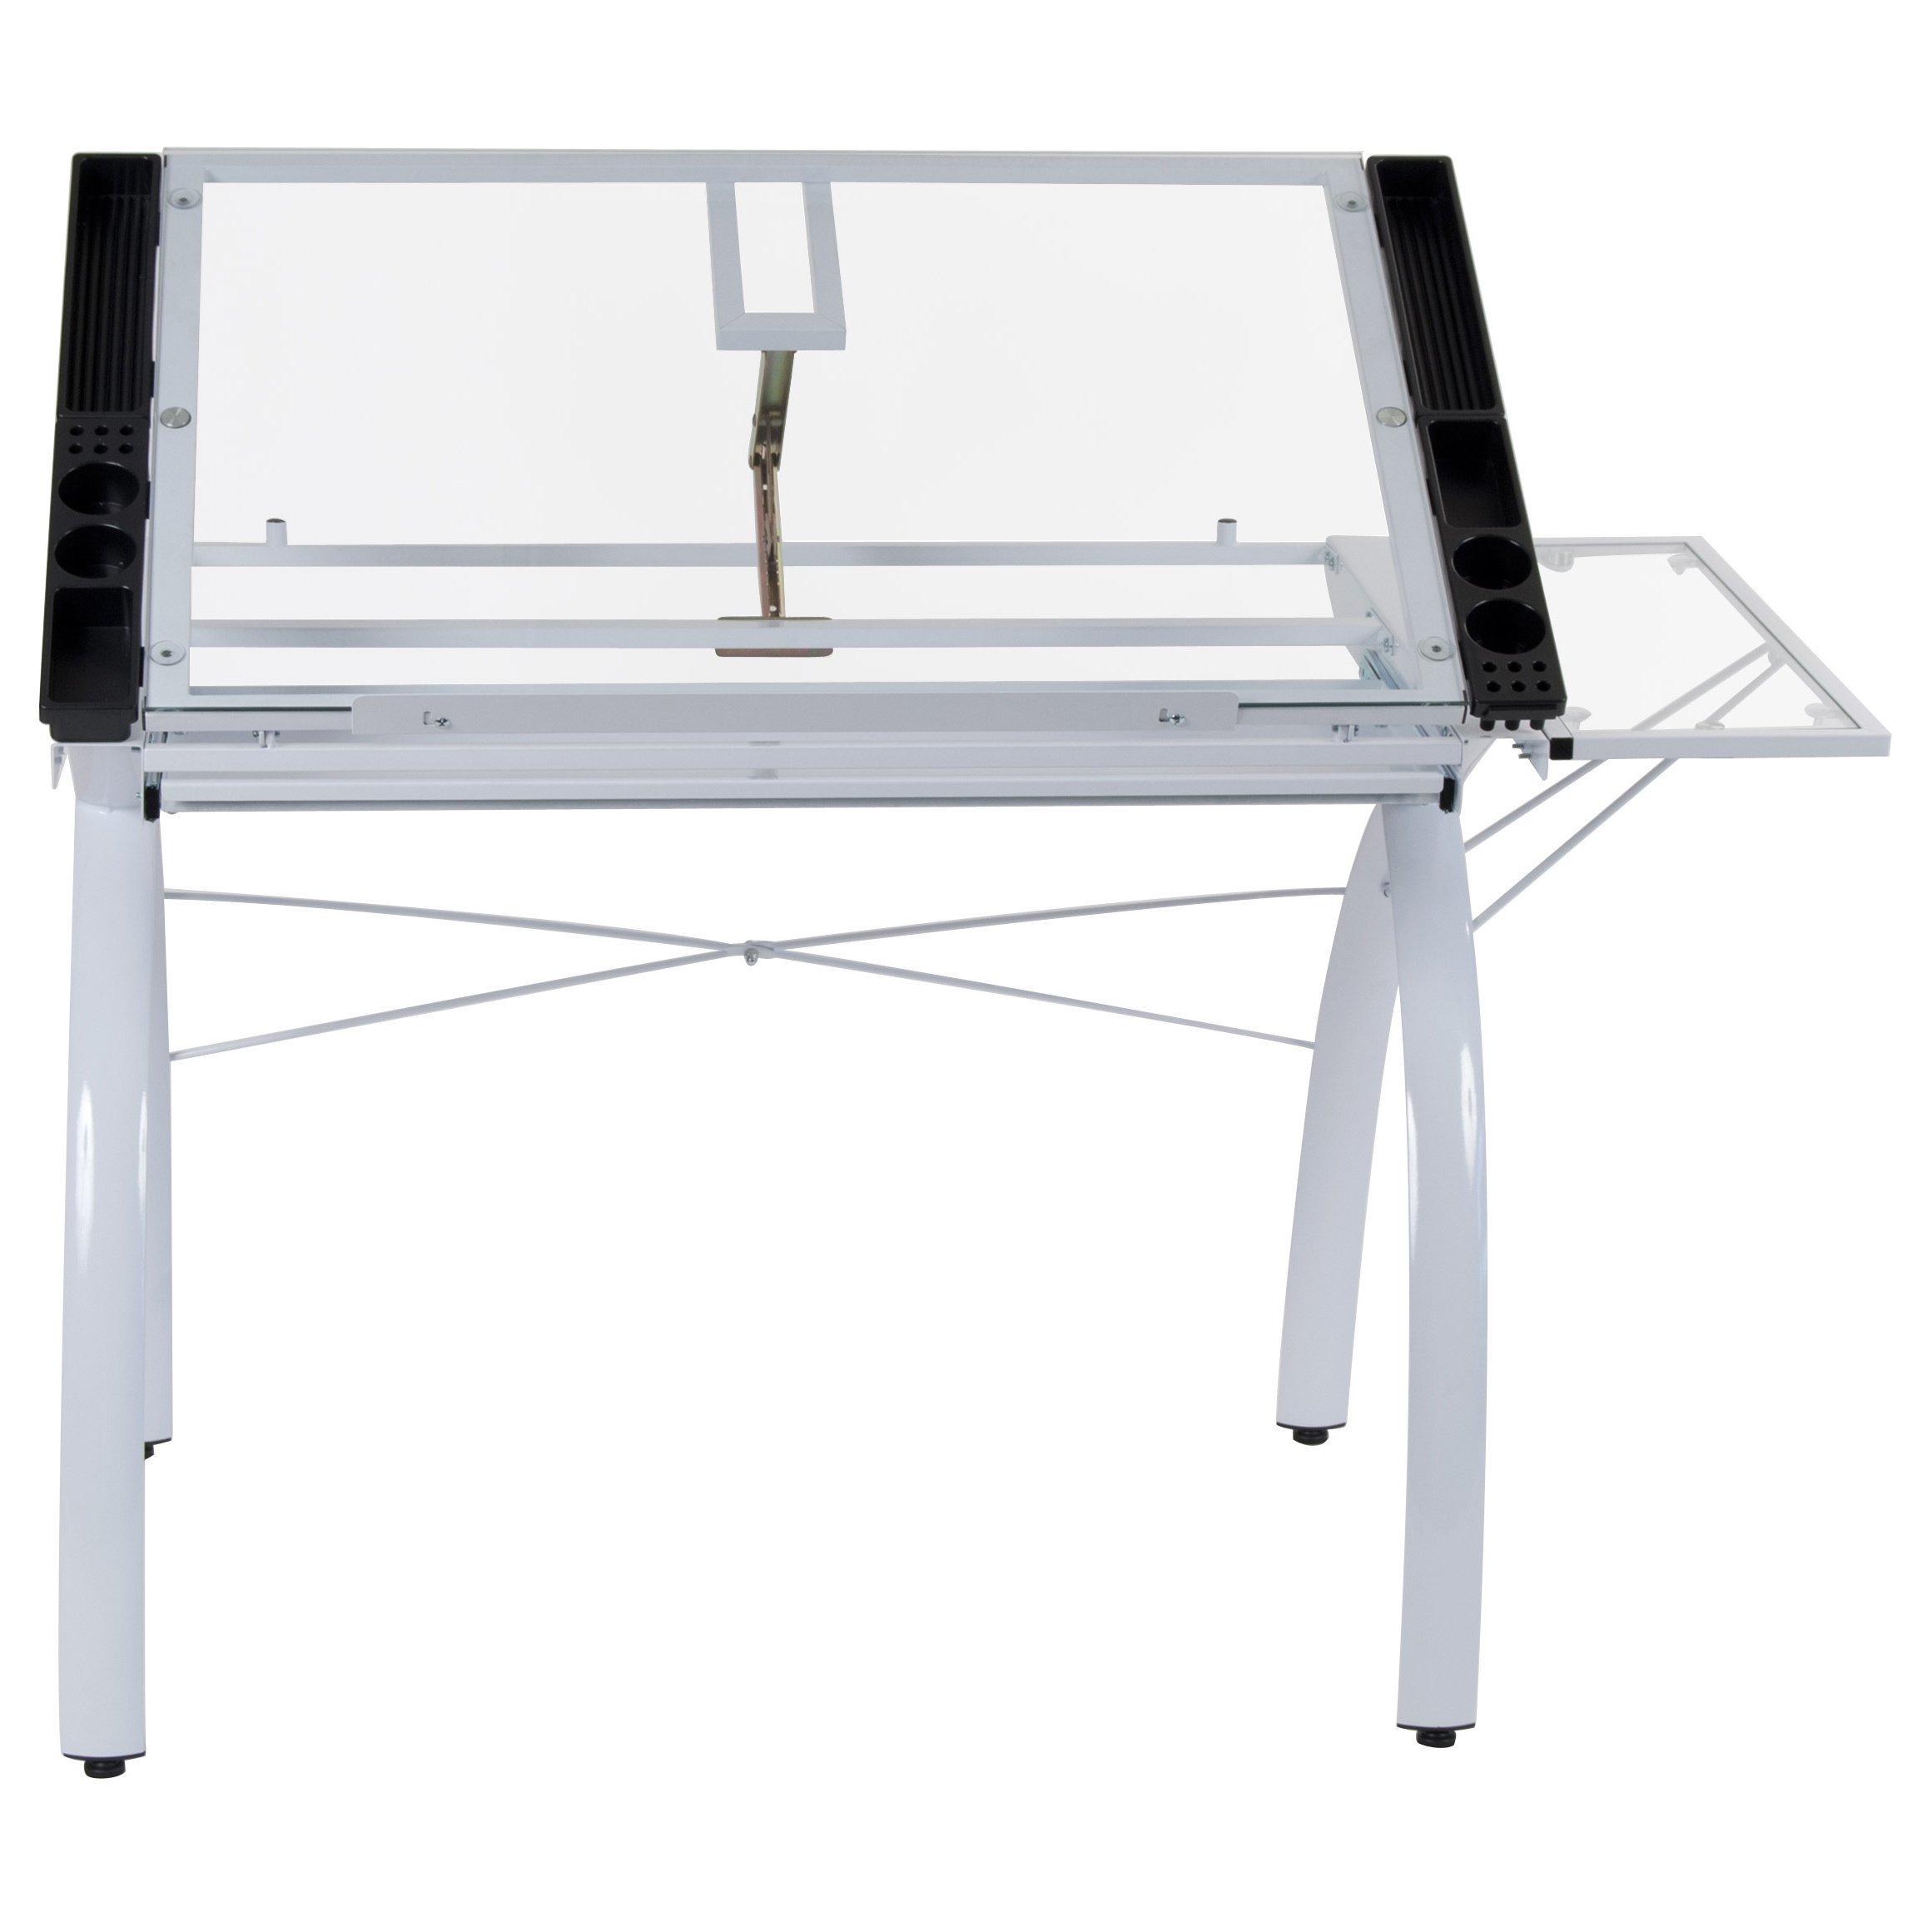 Modern Contemporary Drafting Hobby Craft Station Table with Adjustable Tempered Glass Top with Folding Shelf - Includes Modhaus Living Pen (White) by ModHaus Living (Image #2)